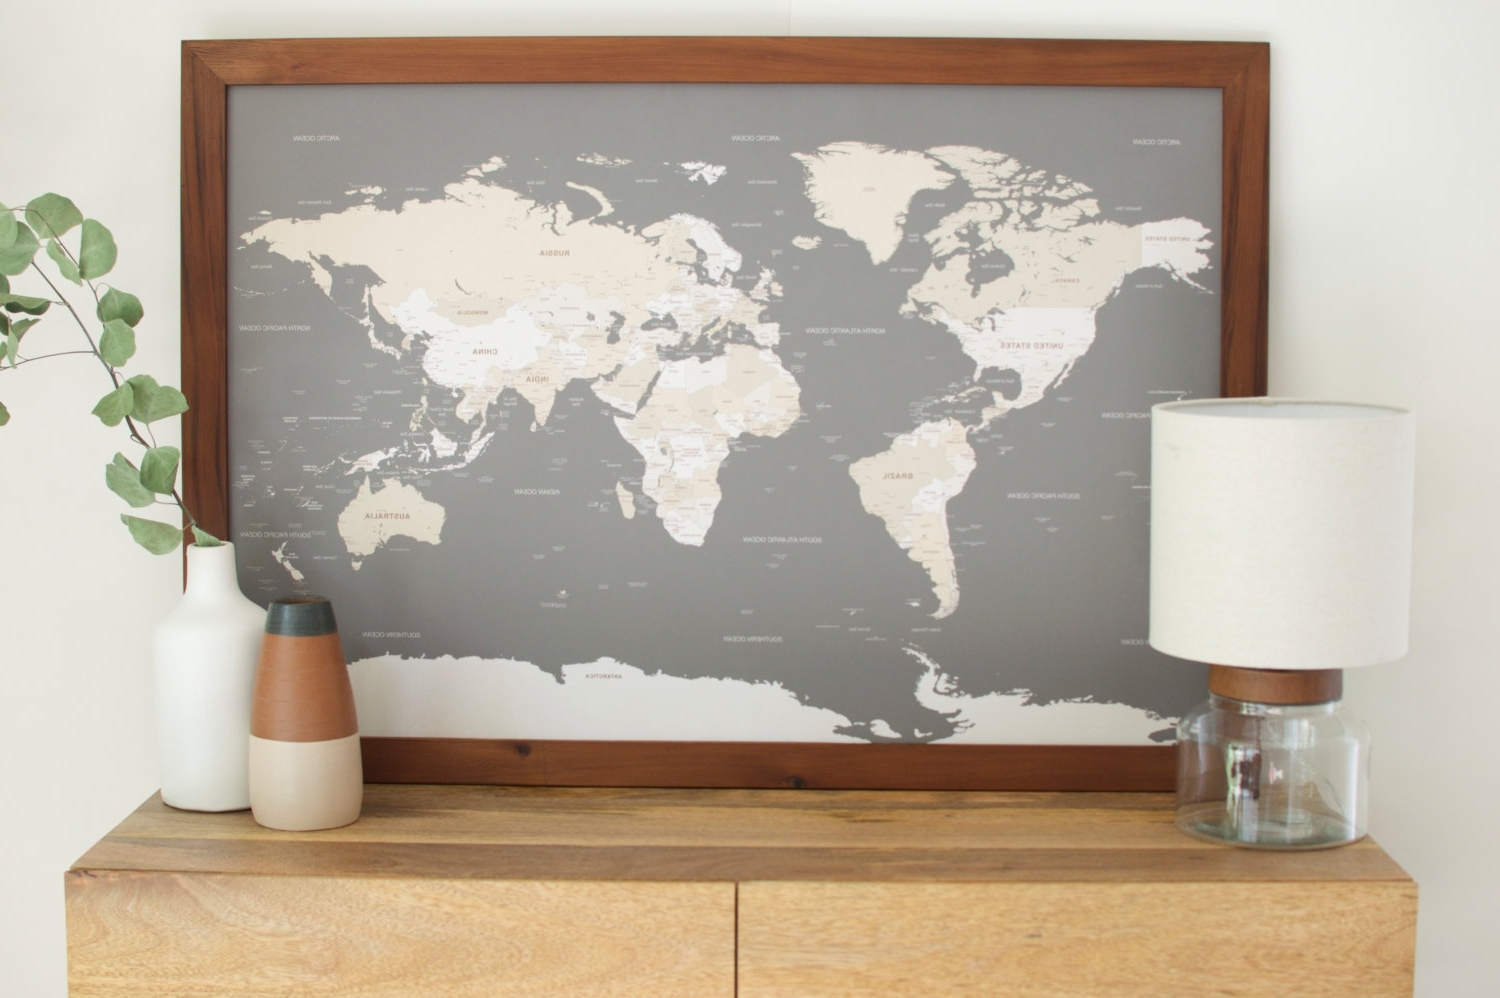 Push Pin Travel Map World Wall Art And Framed Maps Madriver Me New Inside Latest World Map Wall Art Framed (View 11 of 15)